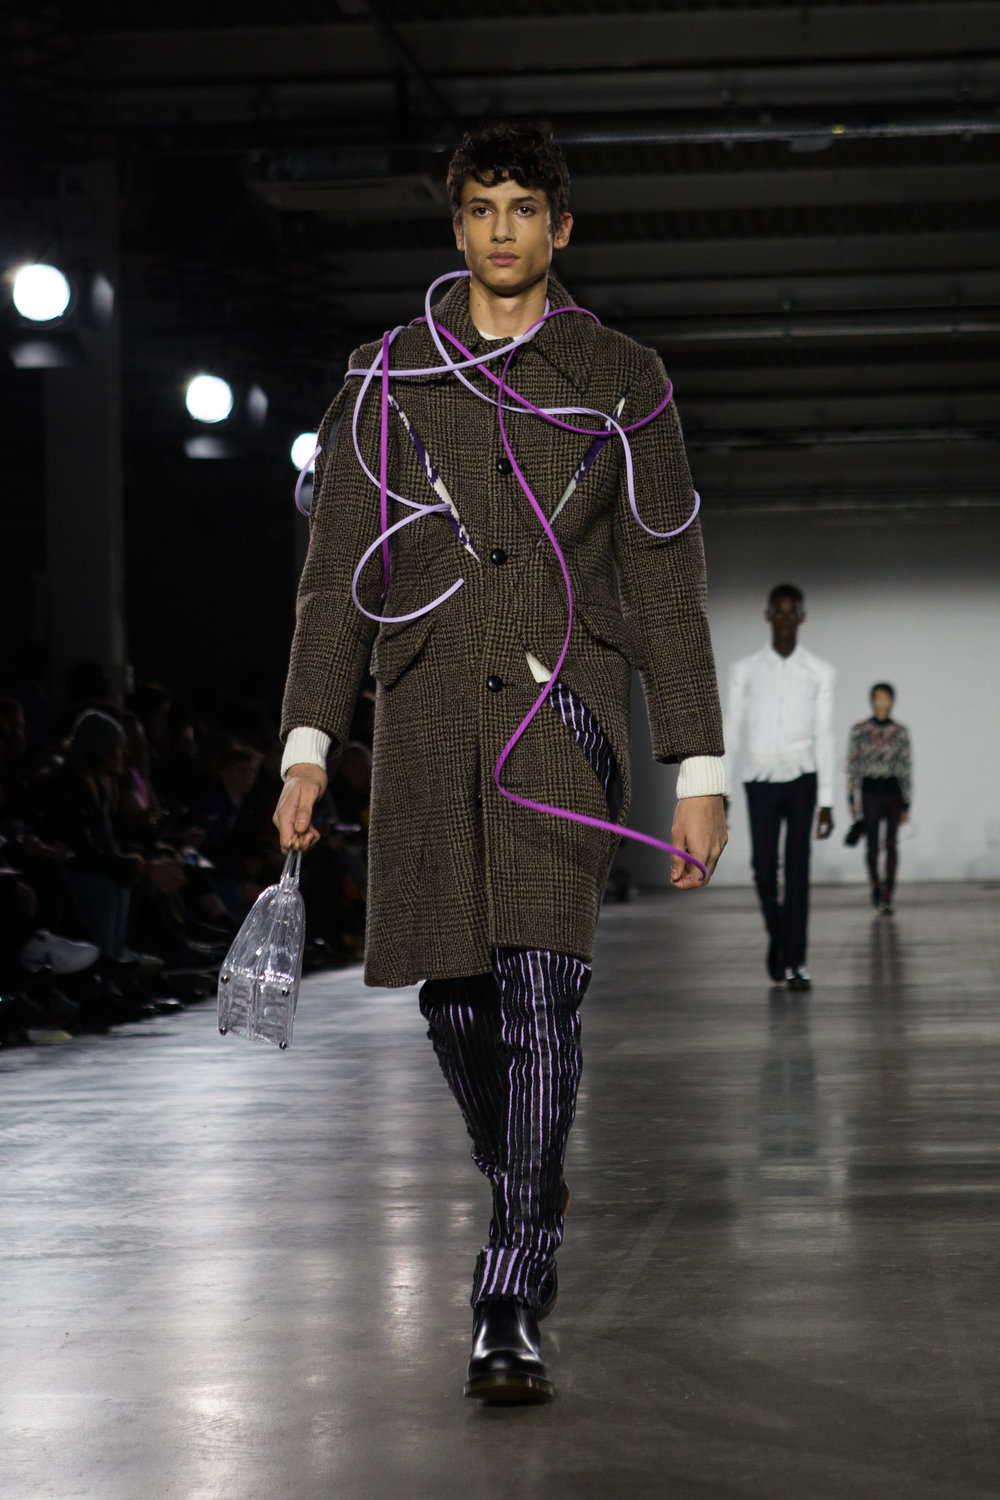 Stefan Cooke x Fashion East AW19 Show | Photography by Rianna Gayle